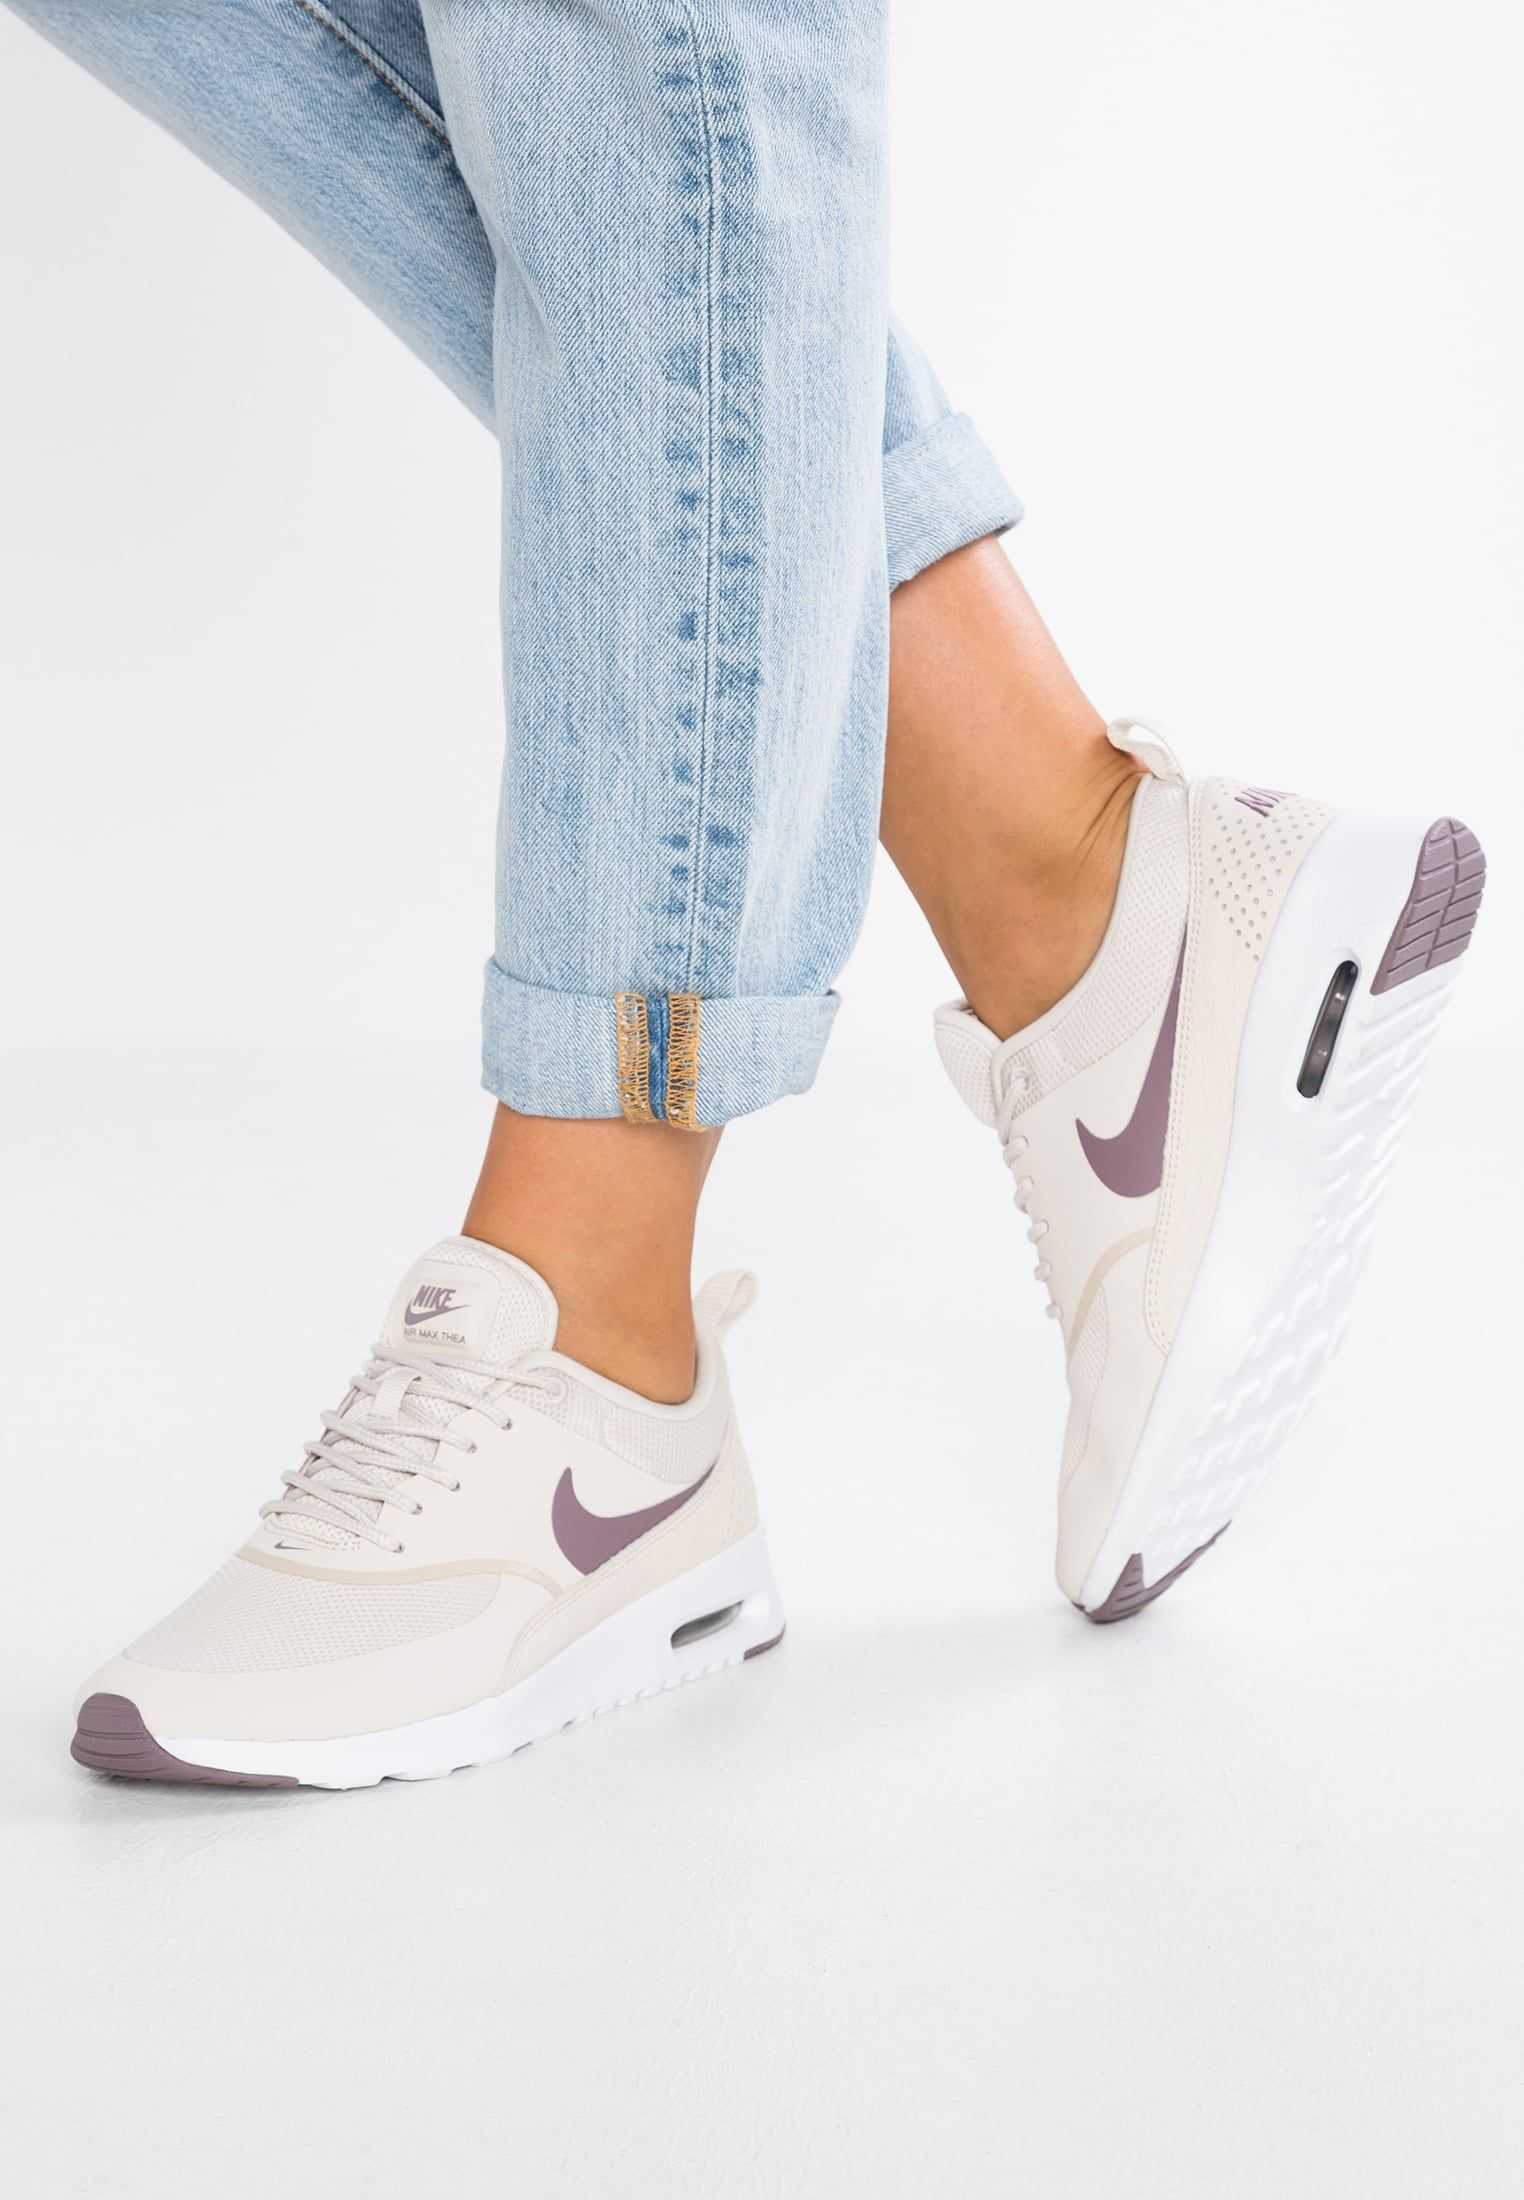 info for ca781 4913a Sneakers laag Nike Sportswear AIR MAX THEA - Sneakers laag - light orewood  brown taupe grey beige  € 95,95 Bij Zalando (op 12-1-18).